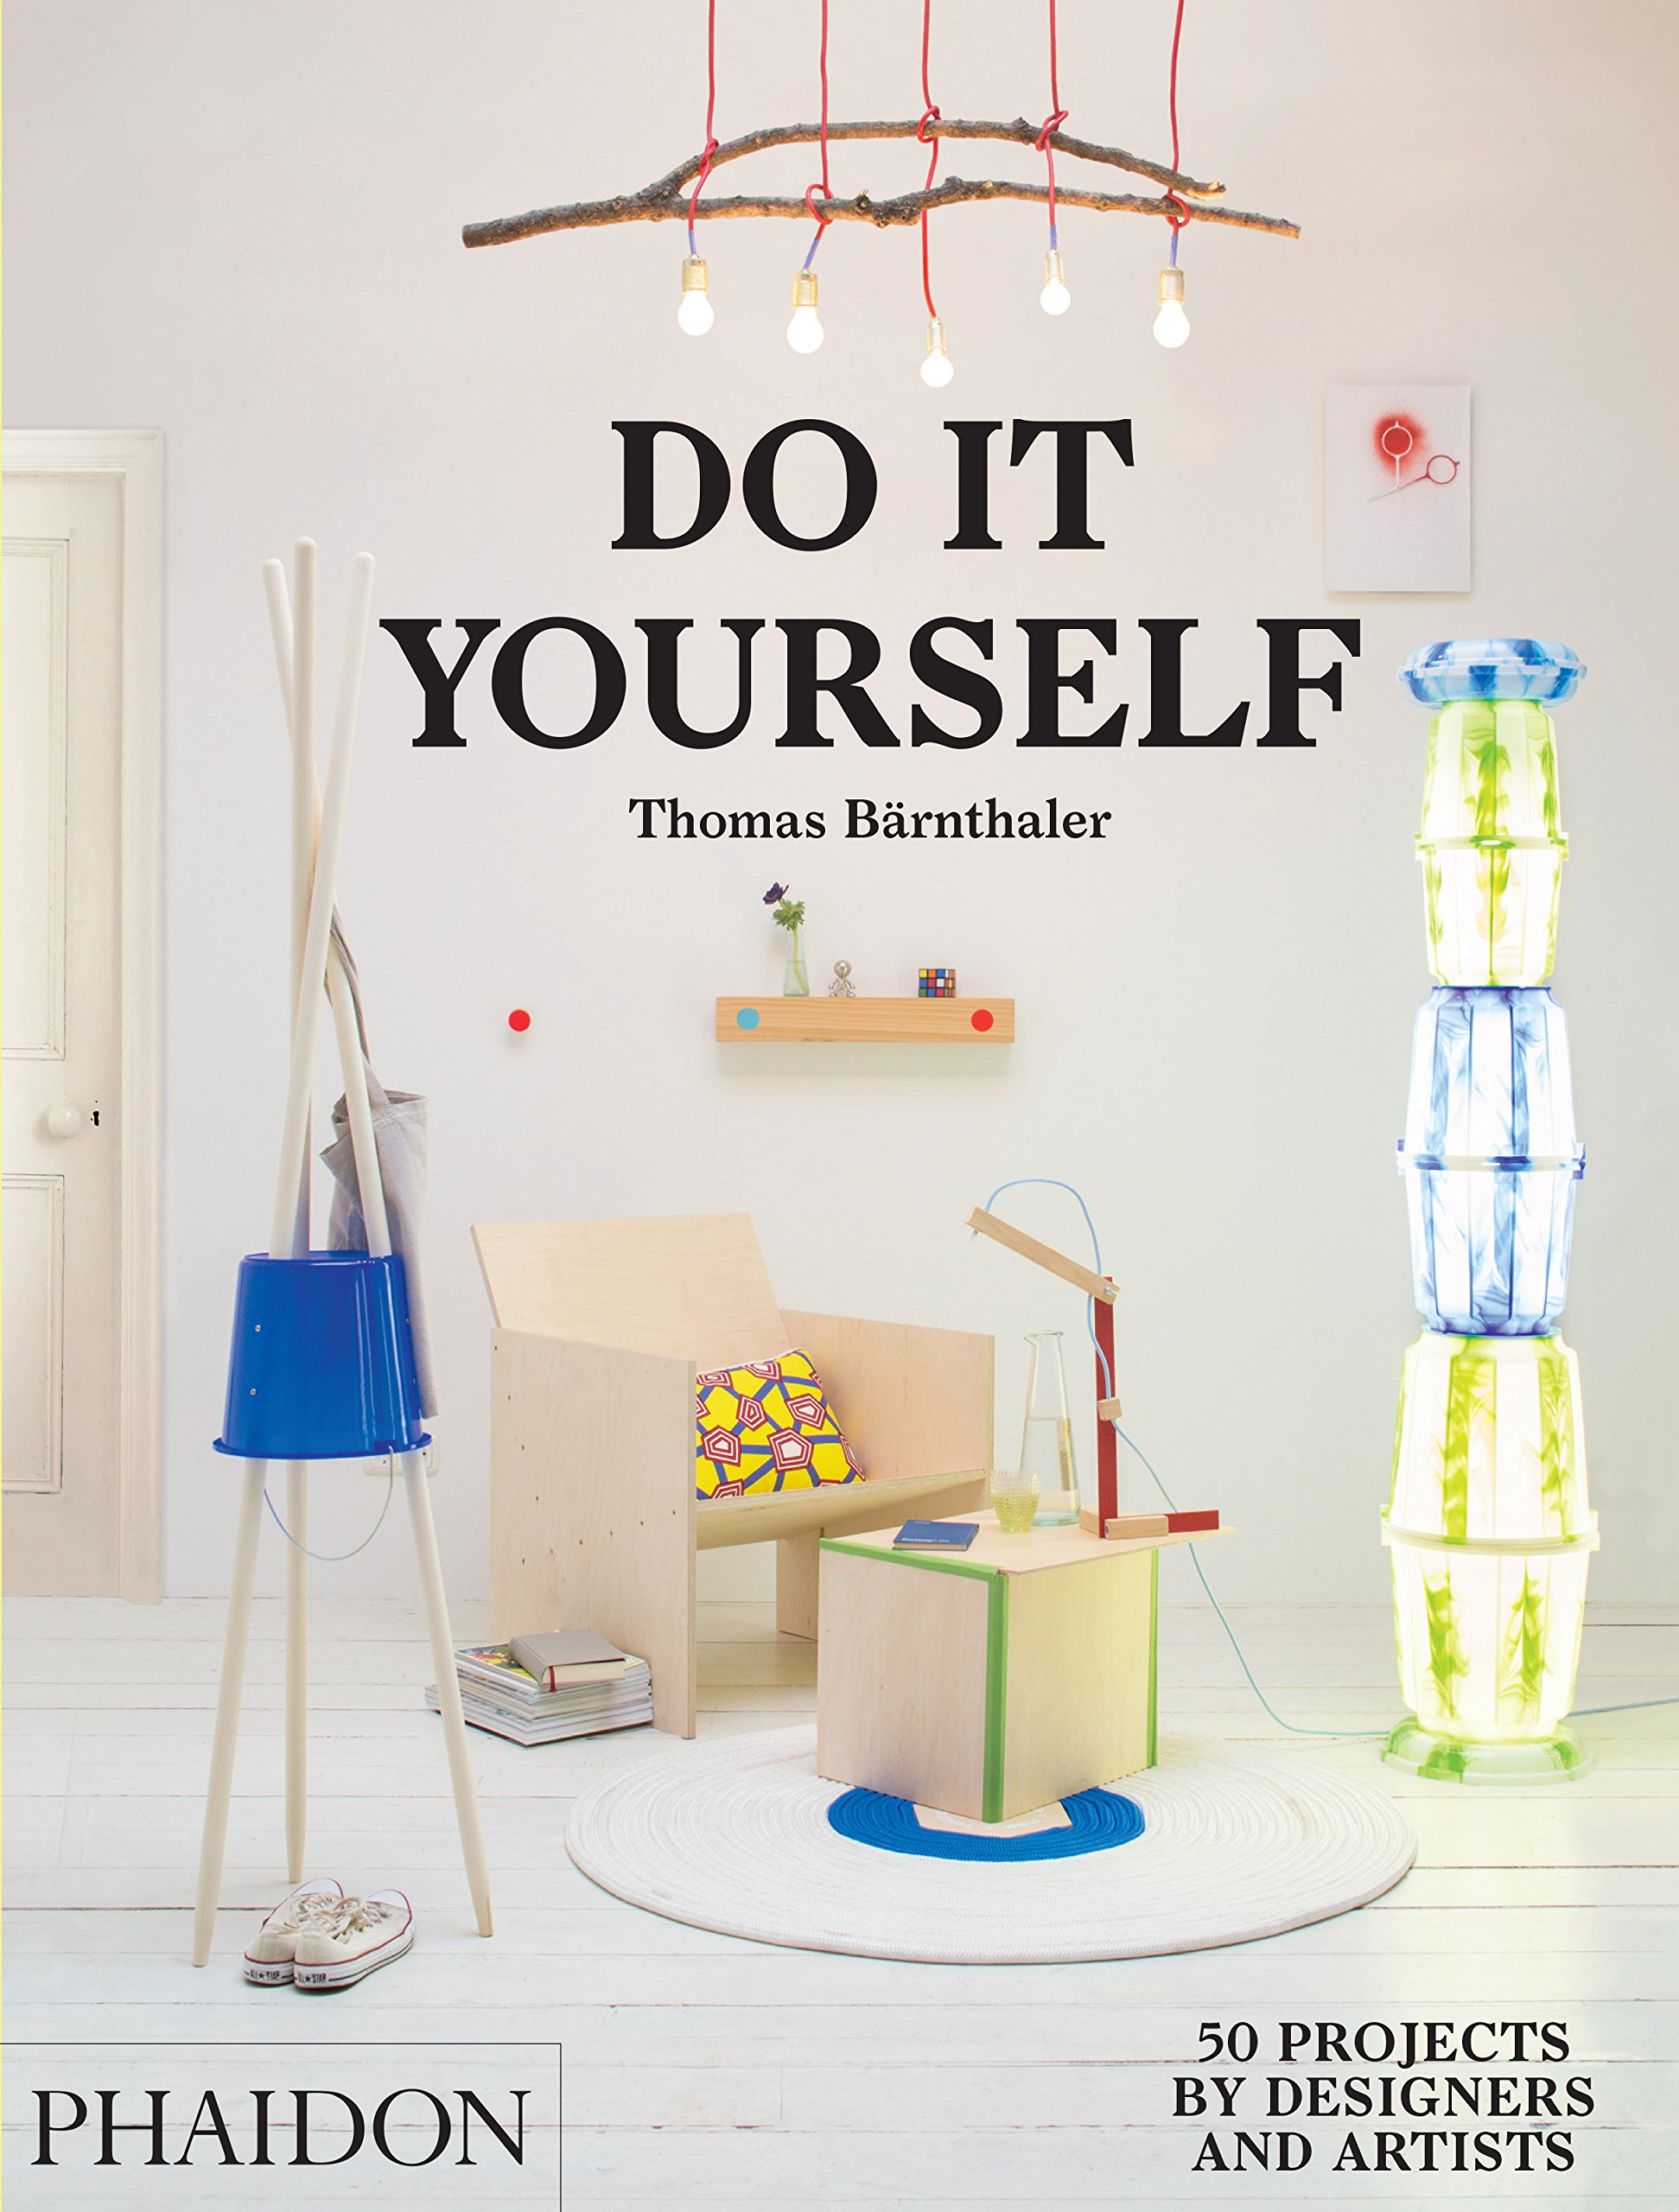 Do it yourself 50 projects by designers and artists thomas do it yourself 50 projects by designers and artists thomas brnthaler 9780714870199 amazon books solutioingenieria Image collections